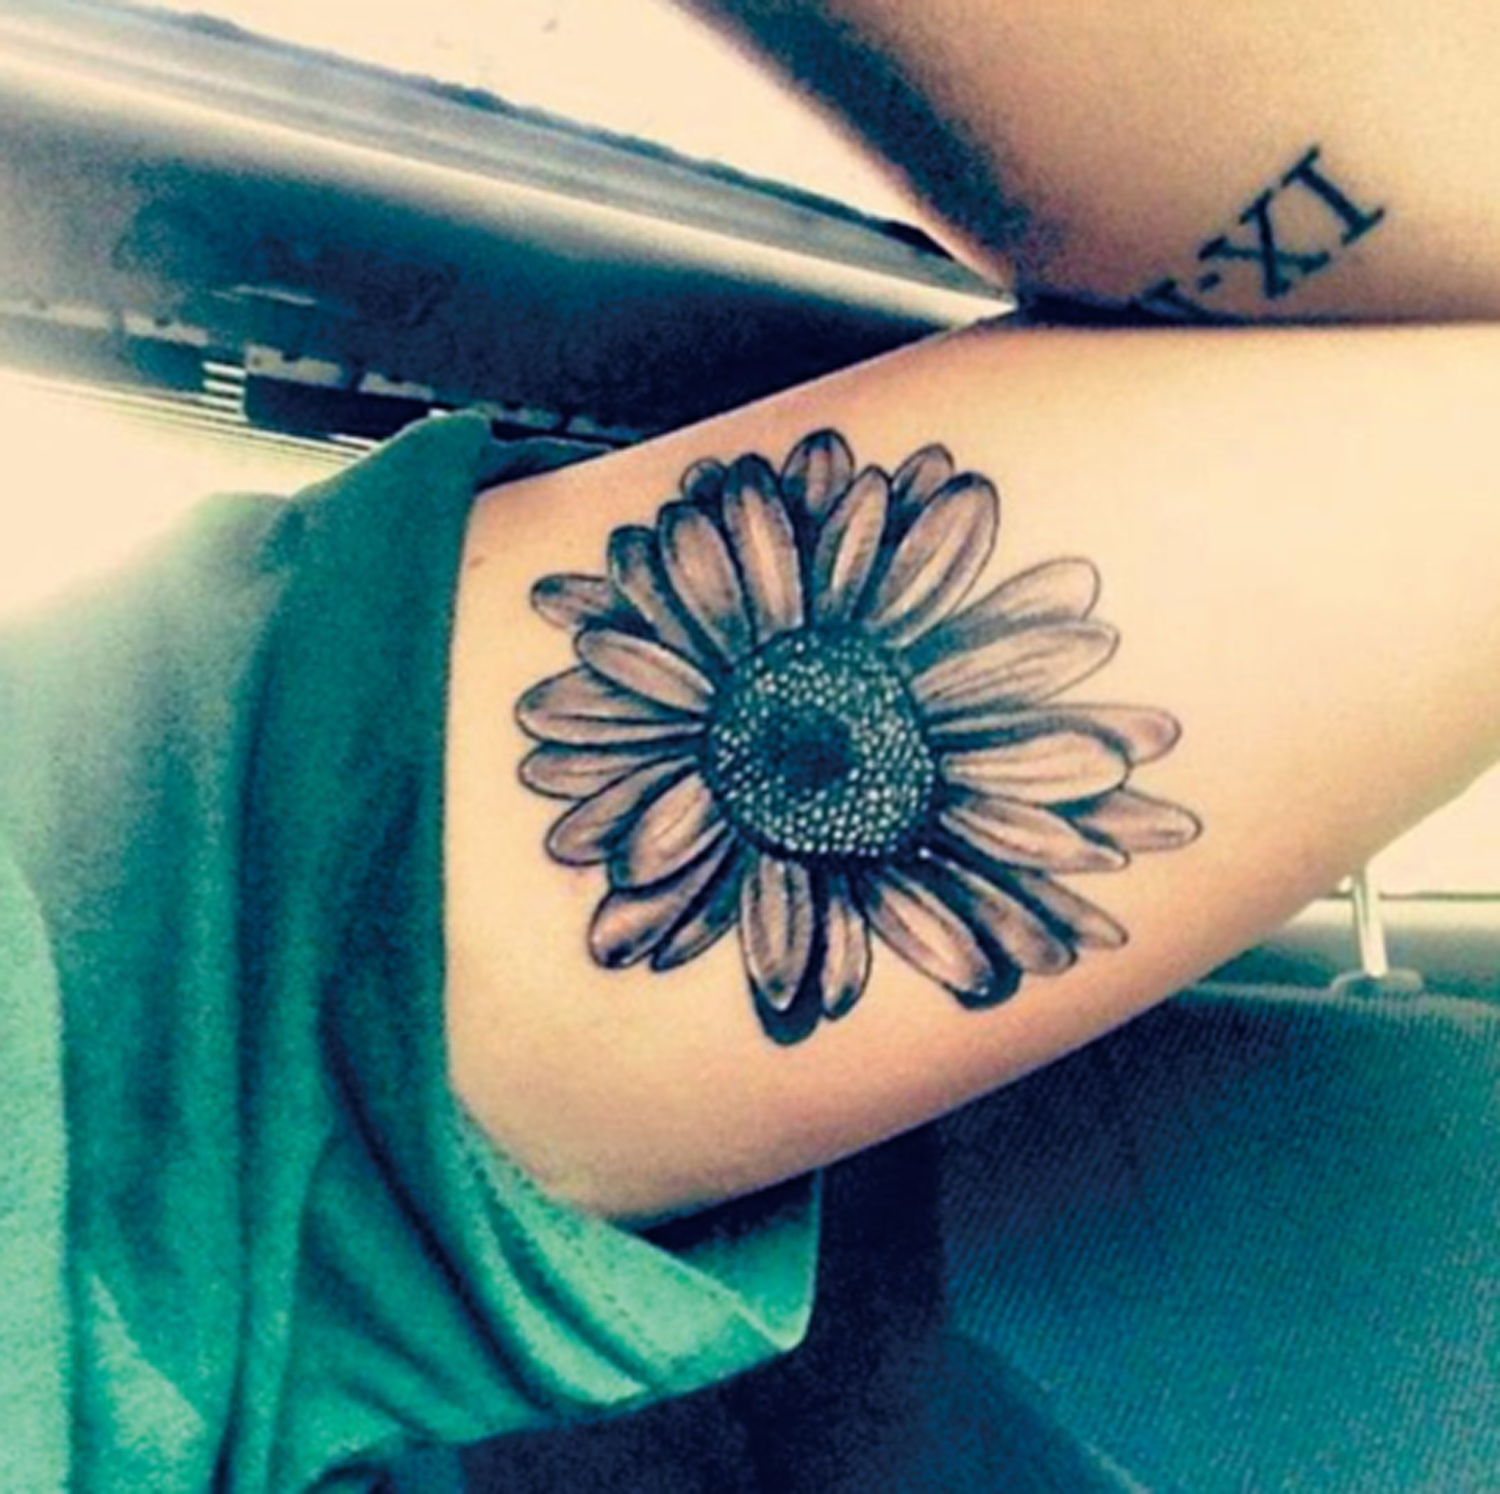 Black and White Sunflower Bicep Arm Tattoo Ideas for Women at MyBodiArt.com